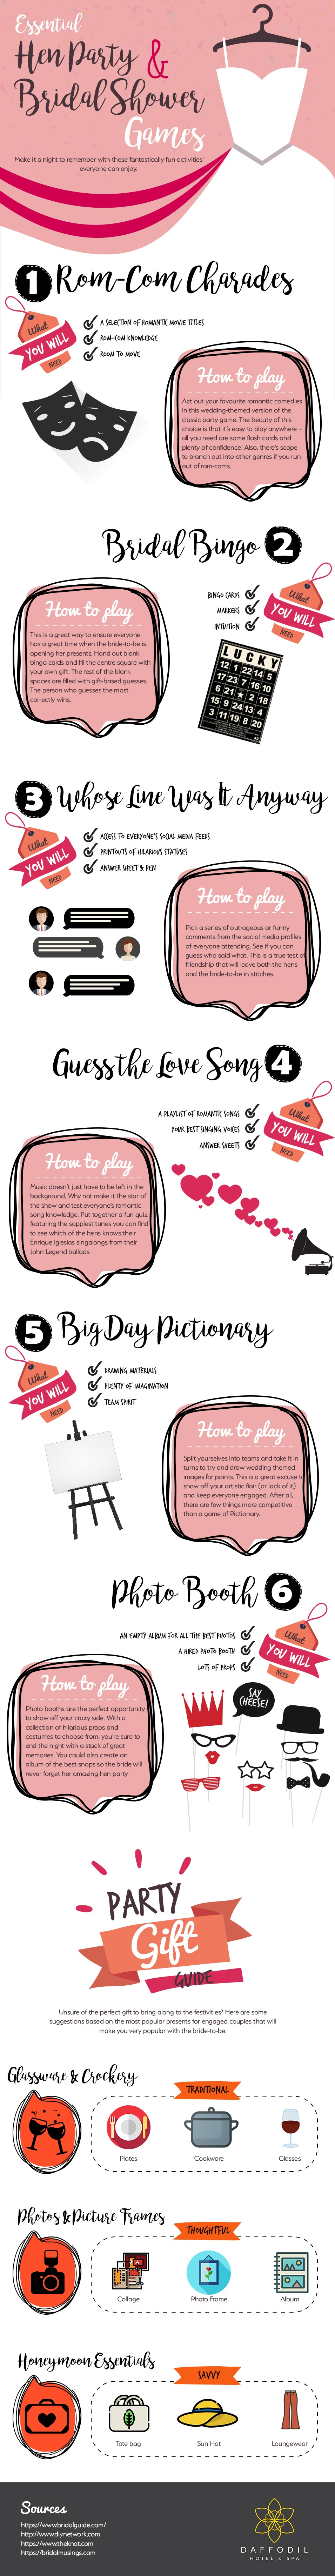 Bridal Shower & Hen Party Games